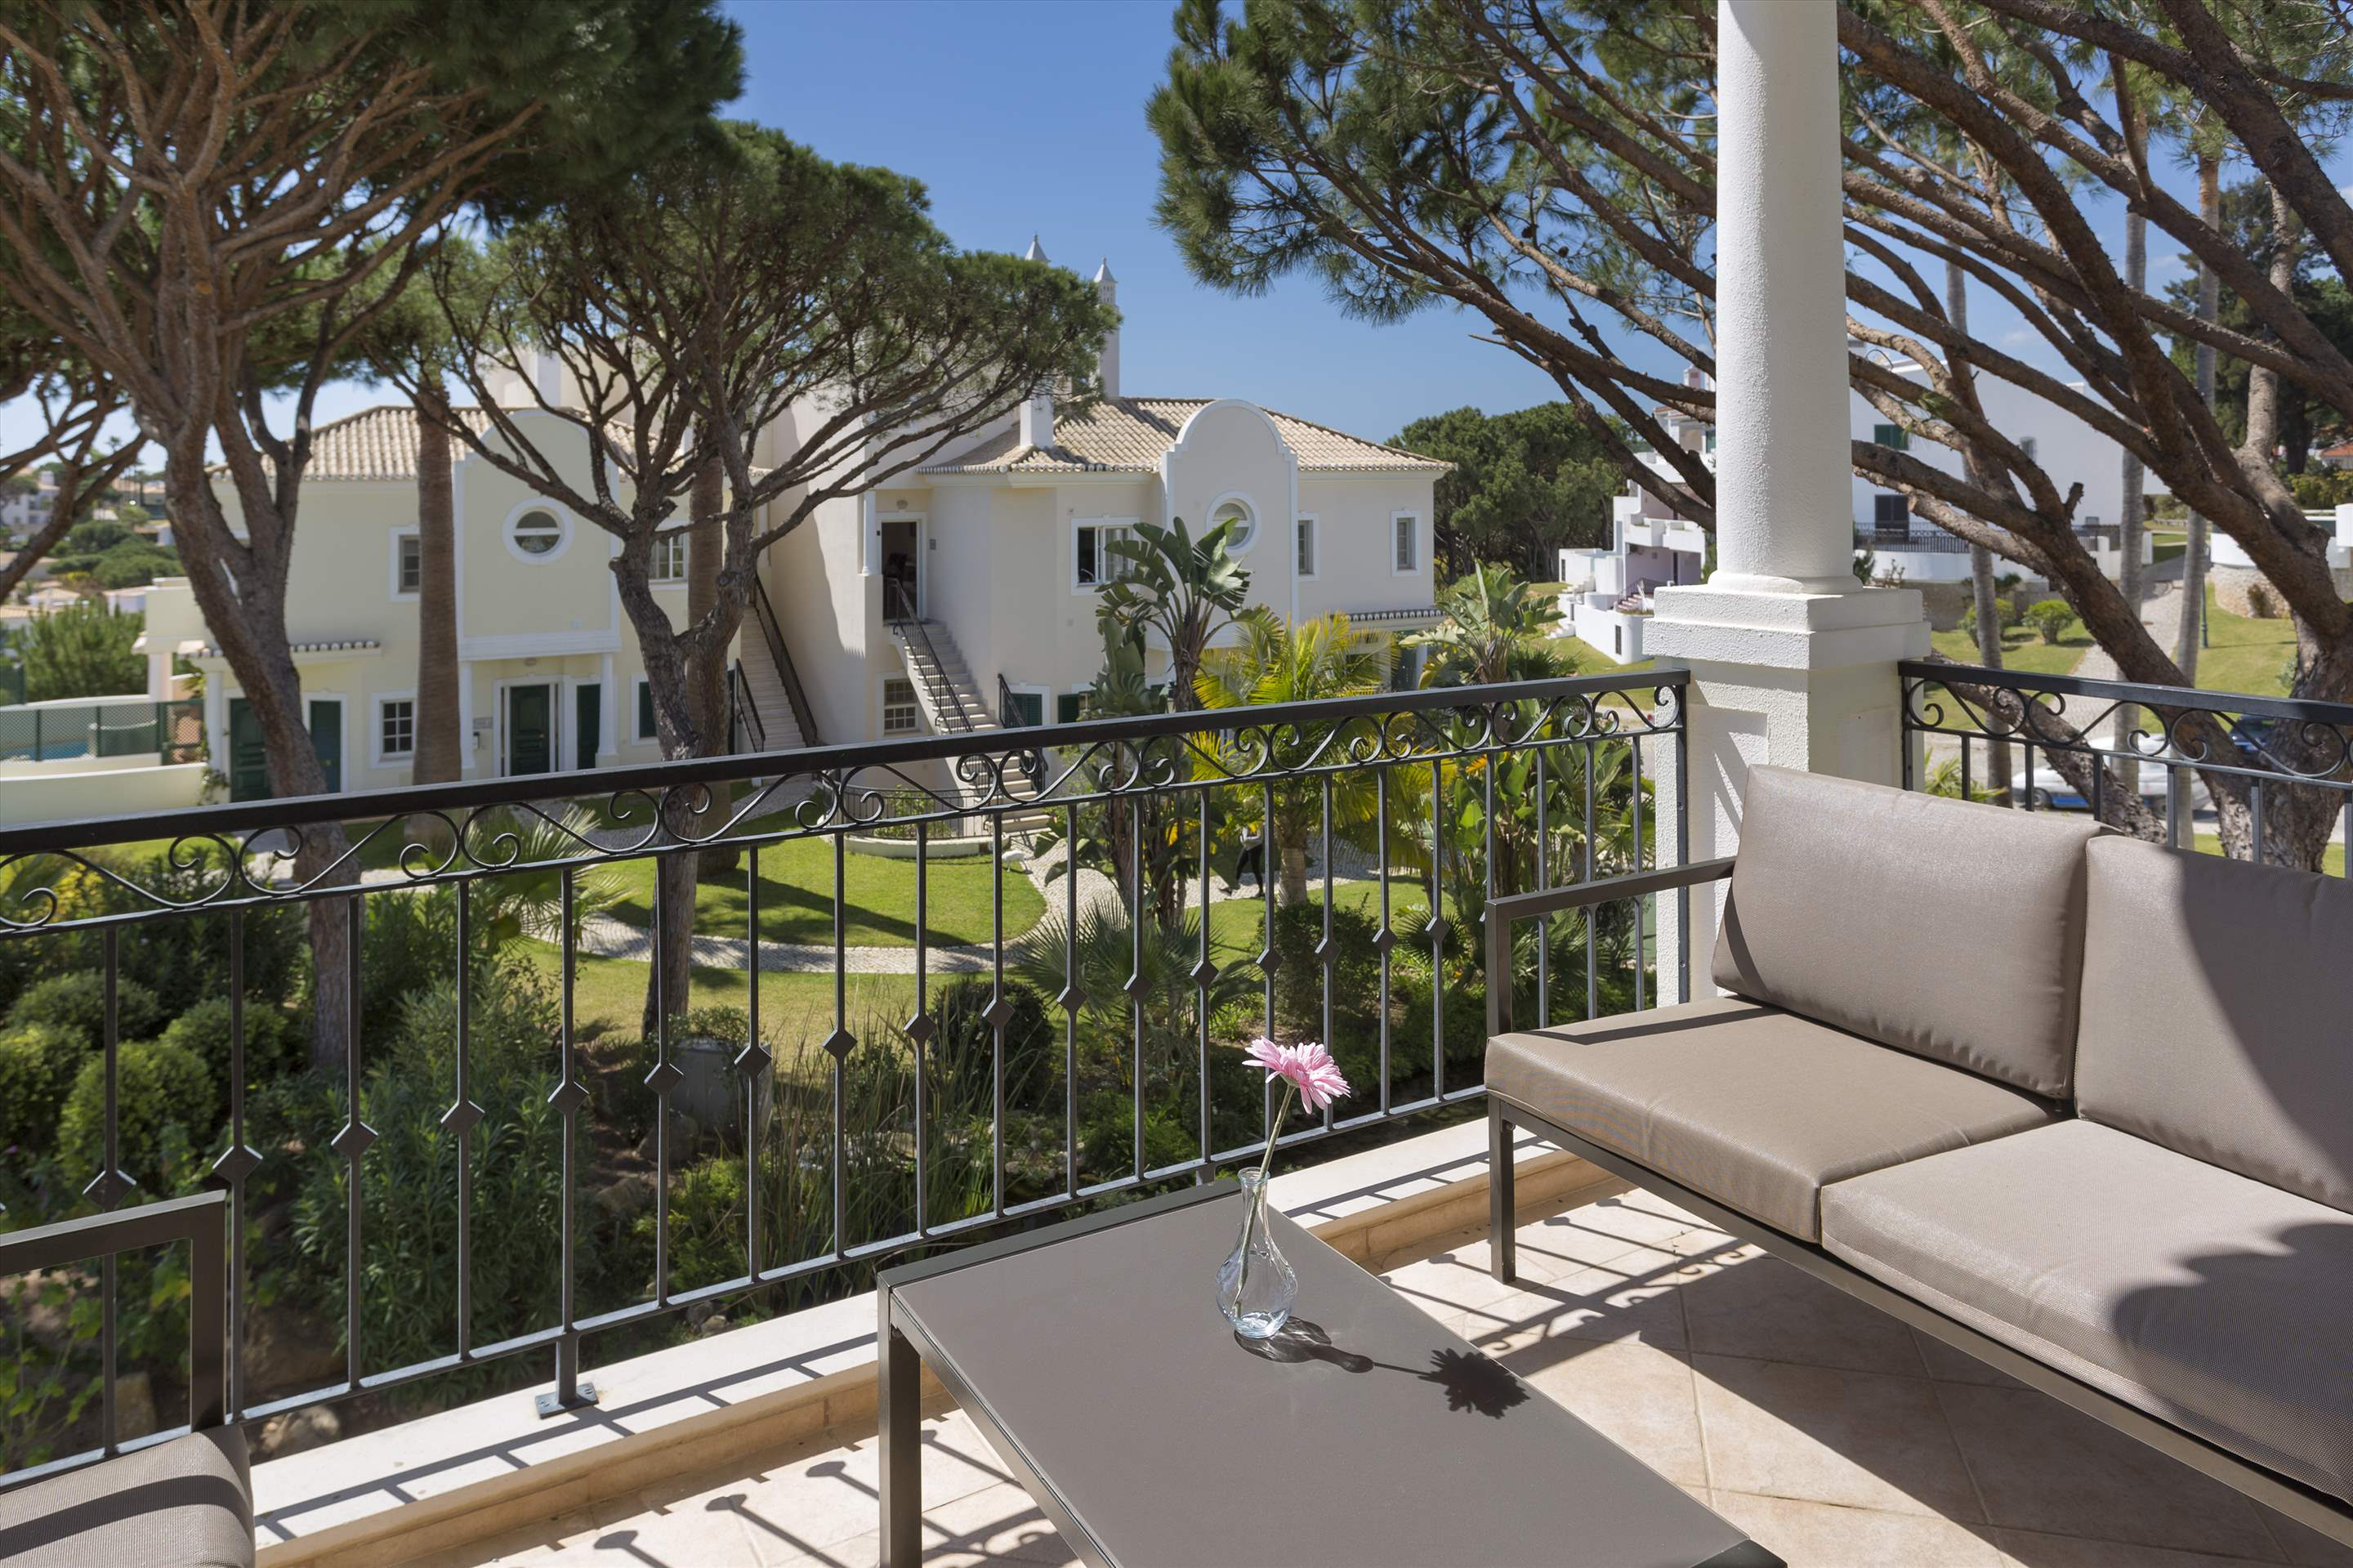 Apartment Jacinda, 2 bedroom apartment in Vale do Lobo, Algarve Photo #9